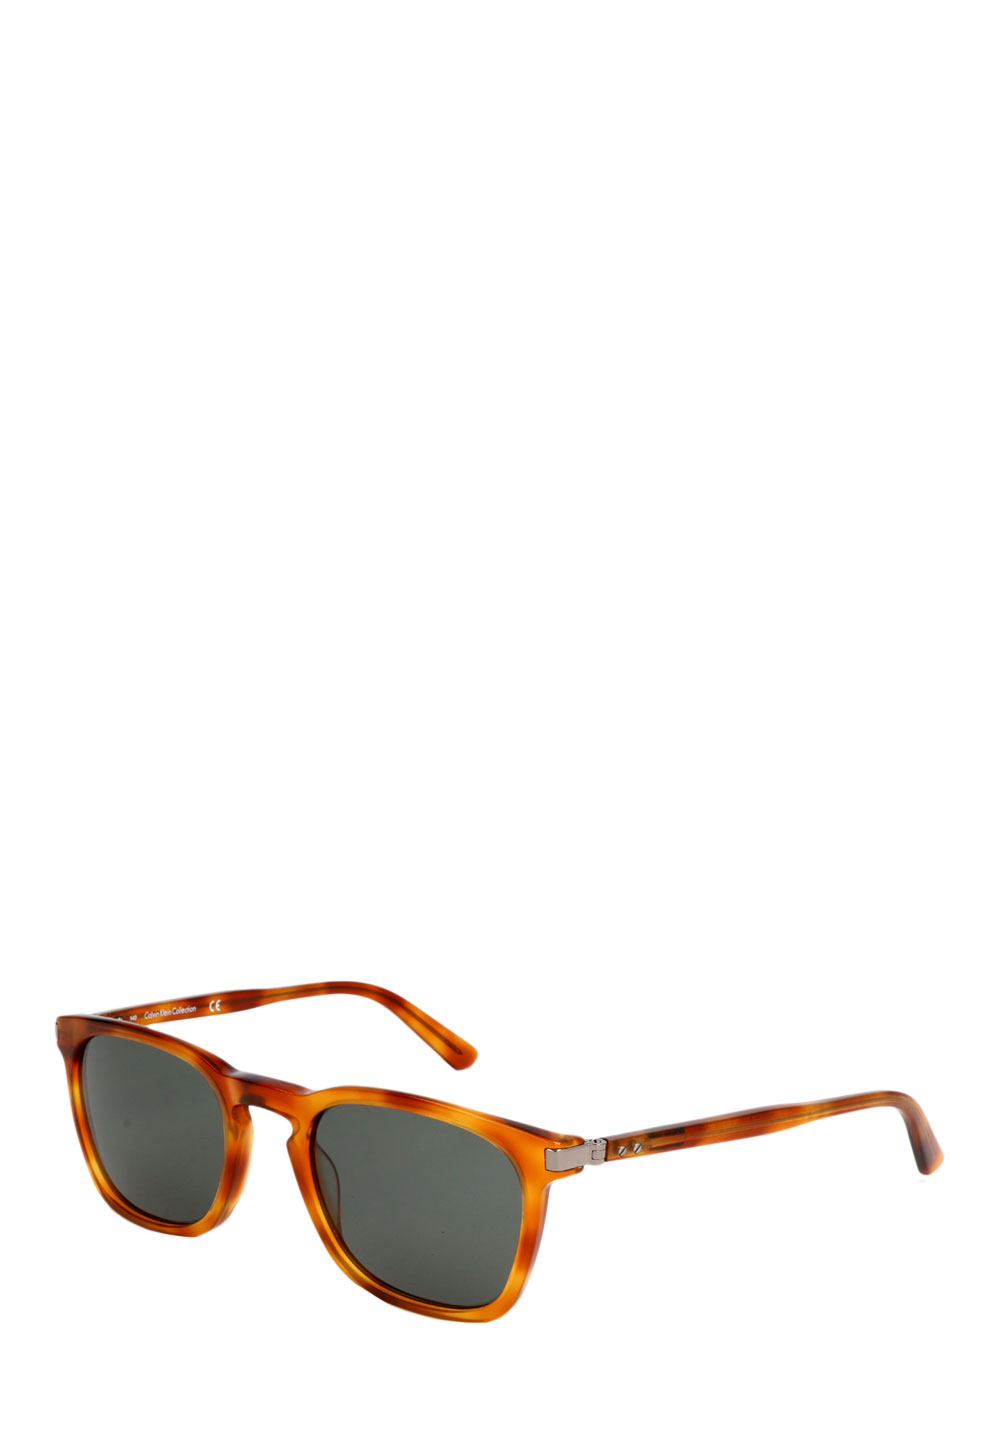 Sonnenbrille Ck8519S, UV 400, UV 400 orange